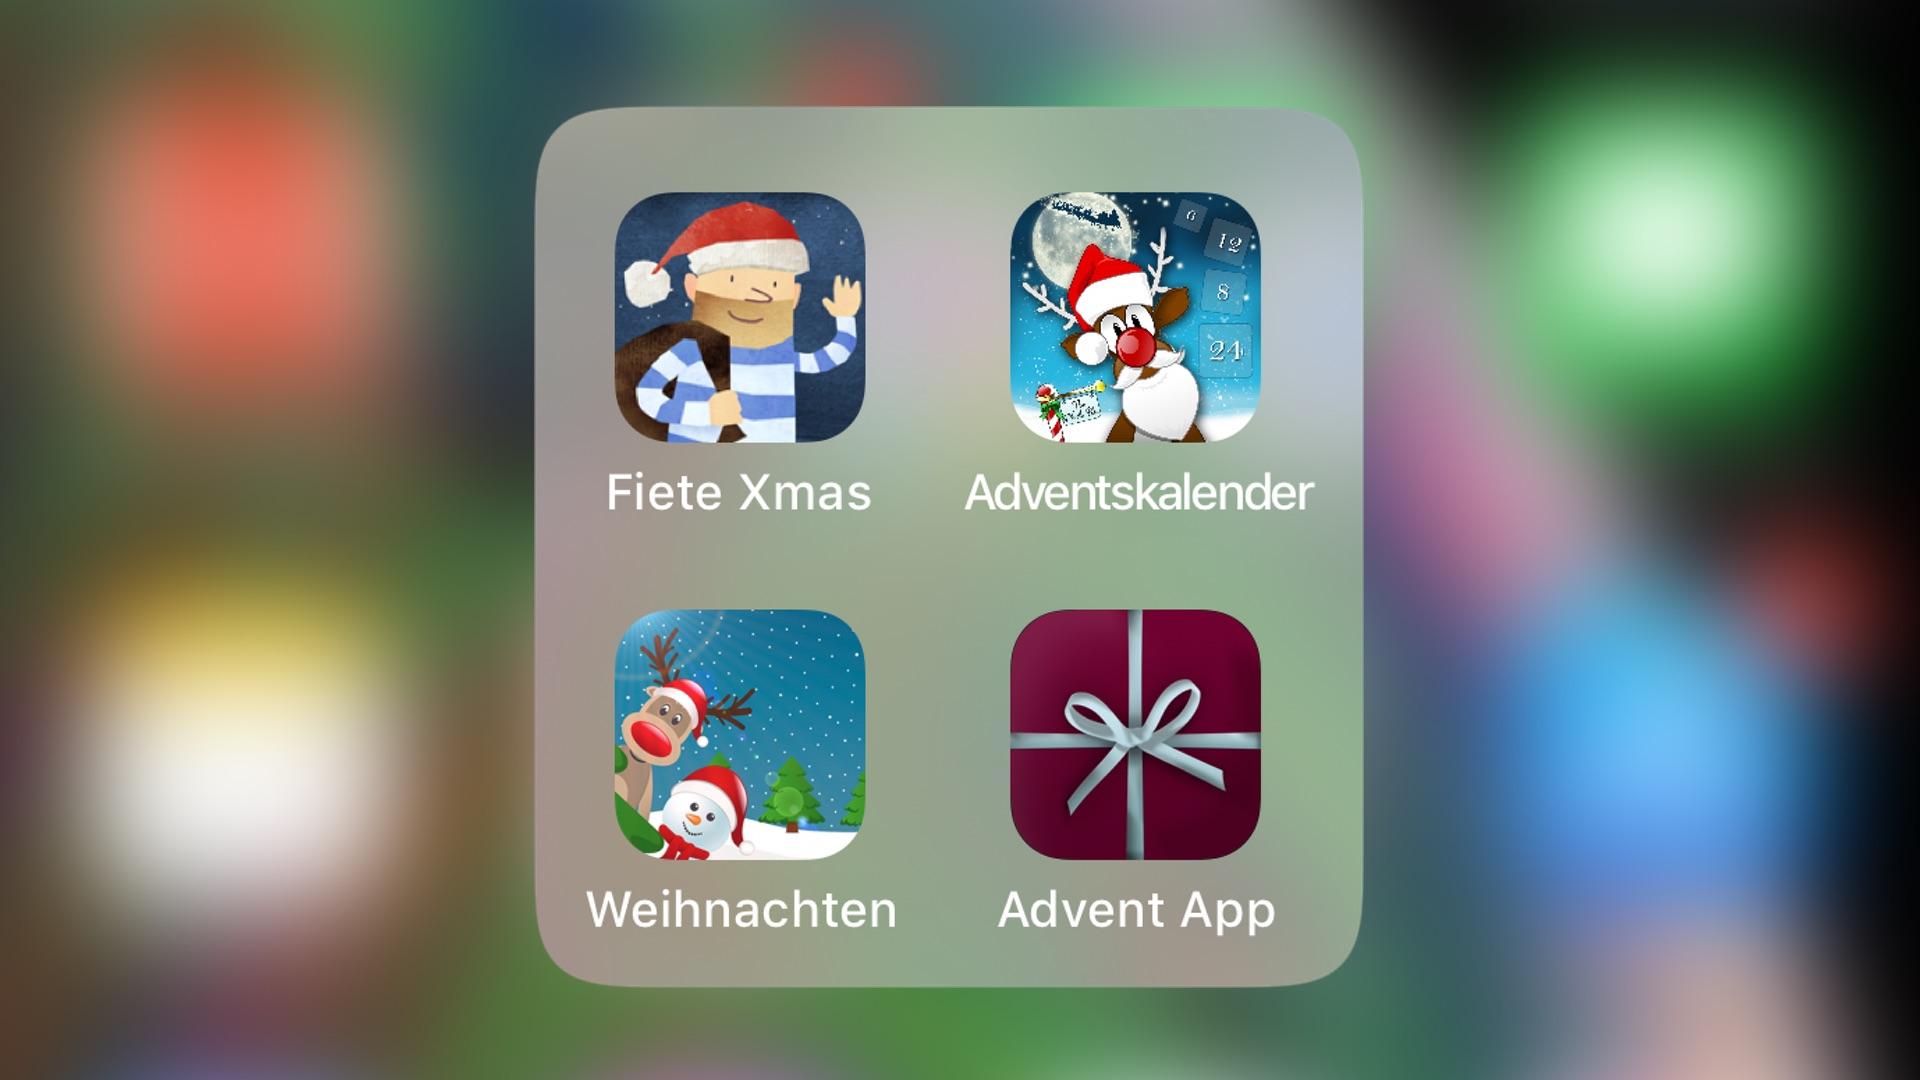 7 Adventskalender Apps 2019 Für Iphone Ab Heute Virtuelle